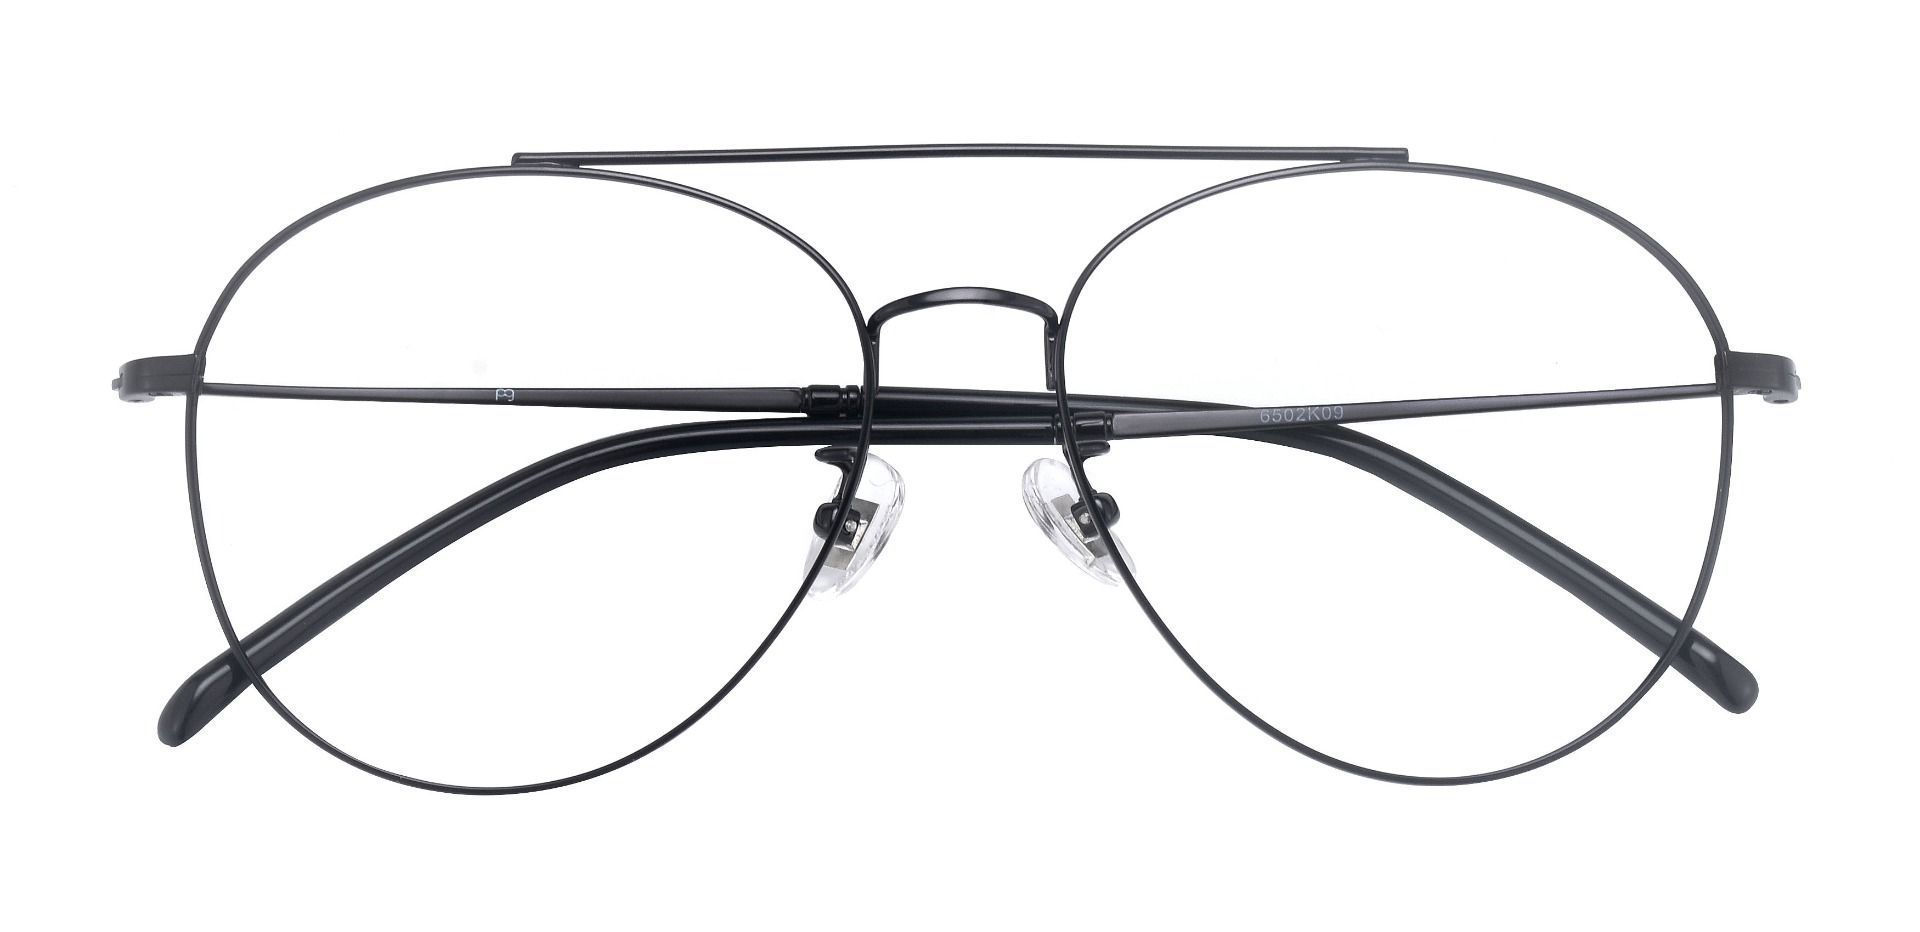 Laredo Aviator Single Vision Glasses - Black